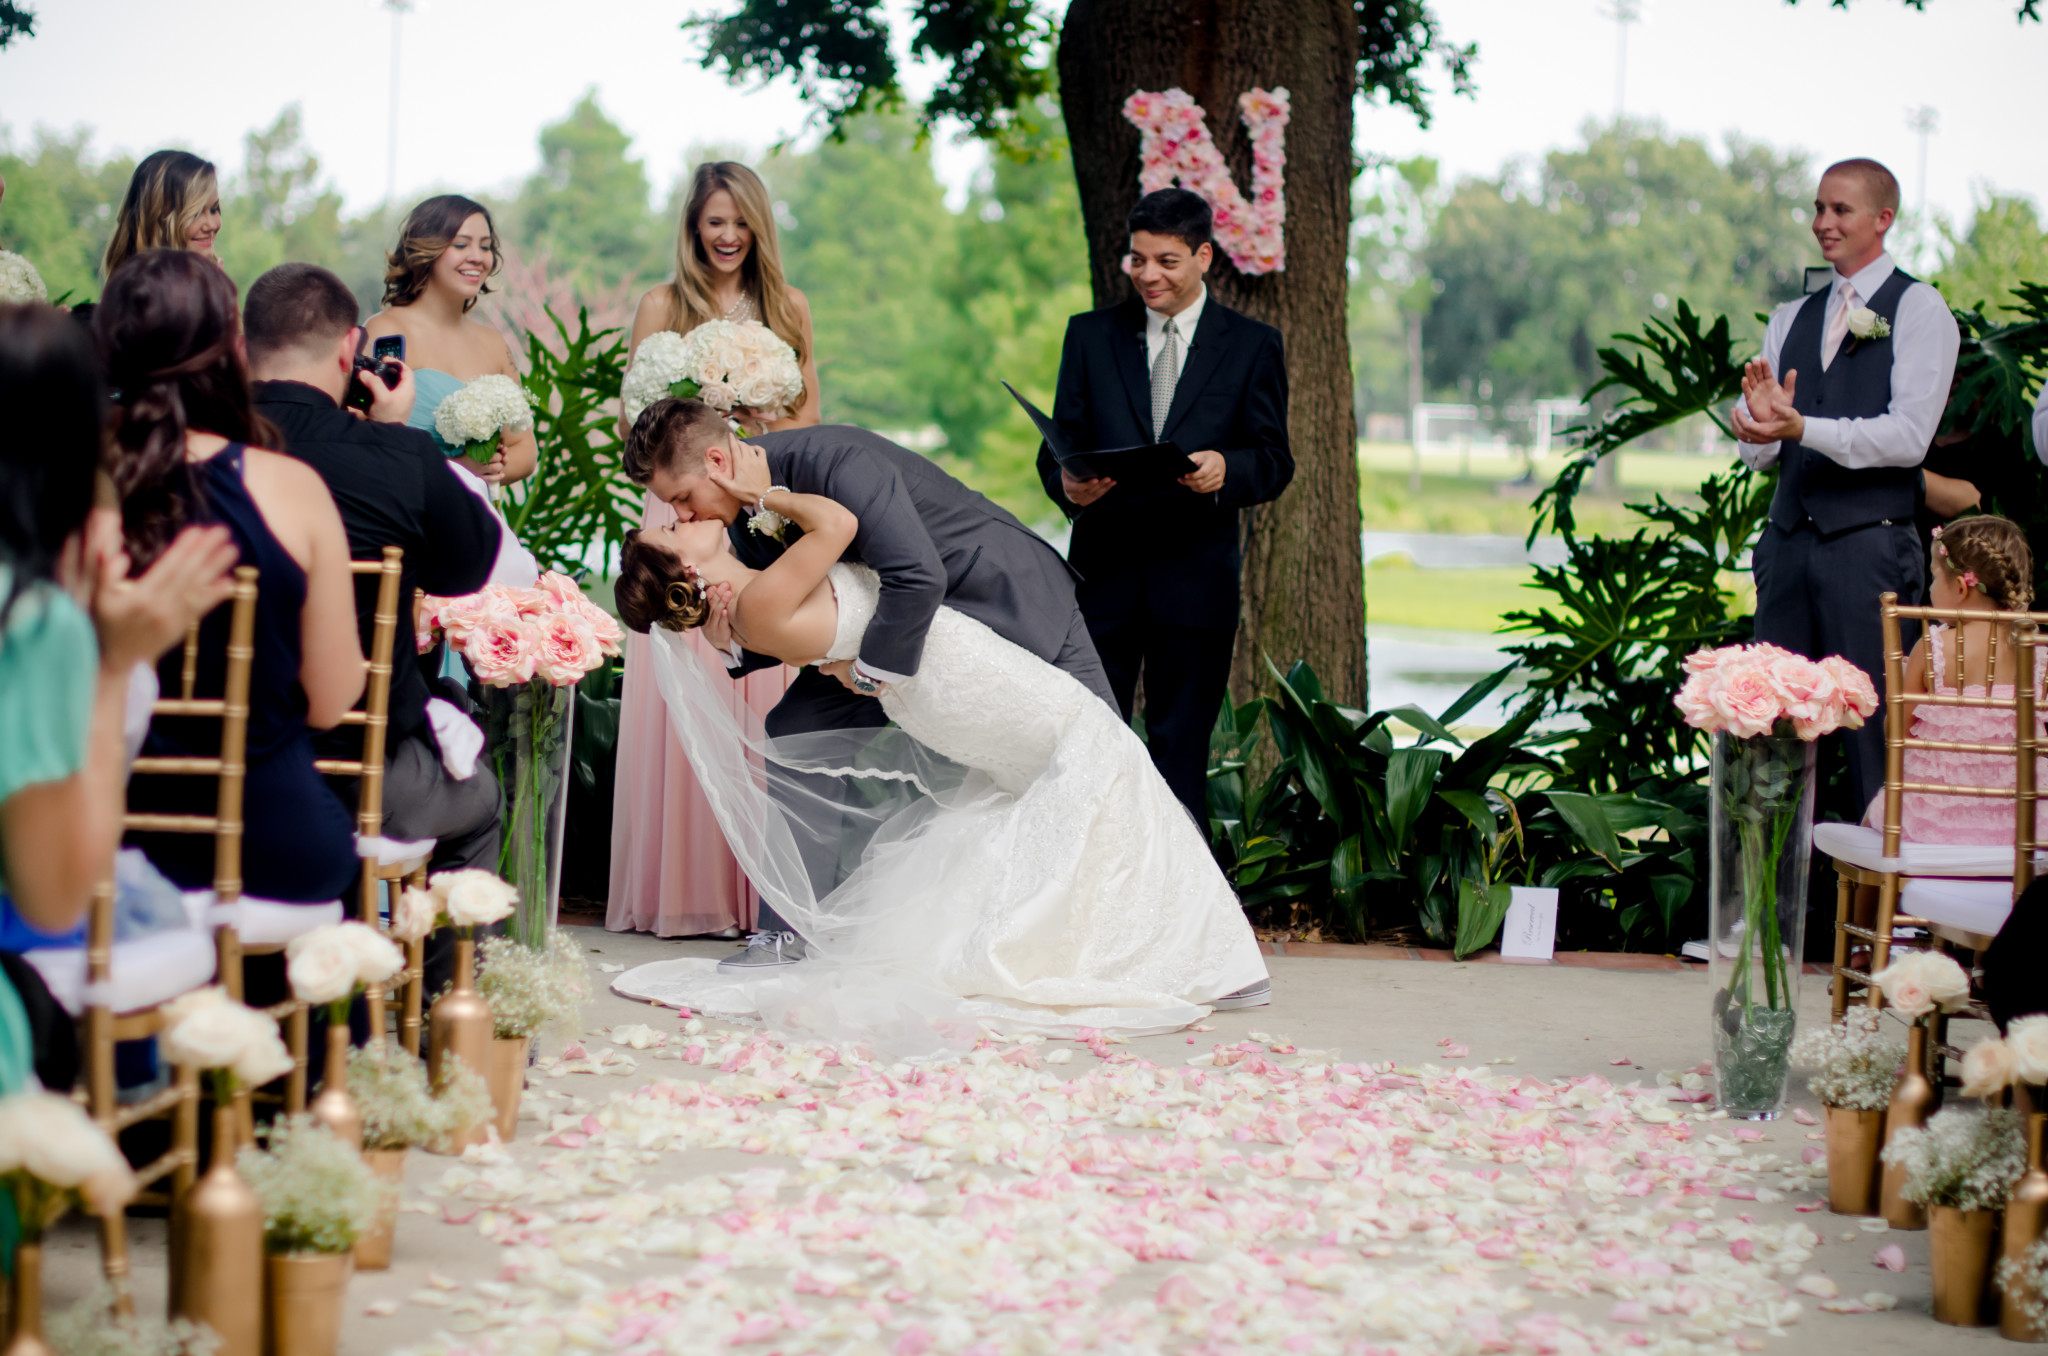 https://www.theknot.com/content/post-wedding-blues-tips-for-dealing/?utm_source=facebook.com&utm_medium=social&utm_content=jun2015&utm_campaign=planning